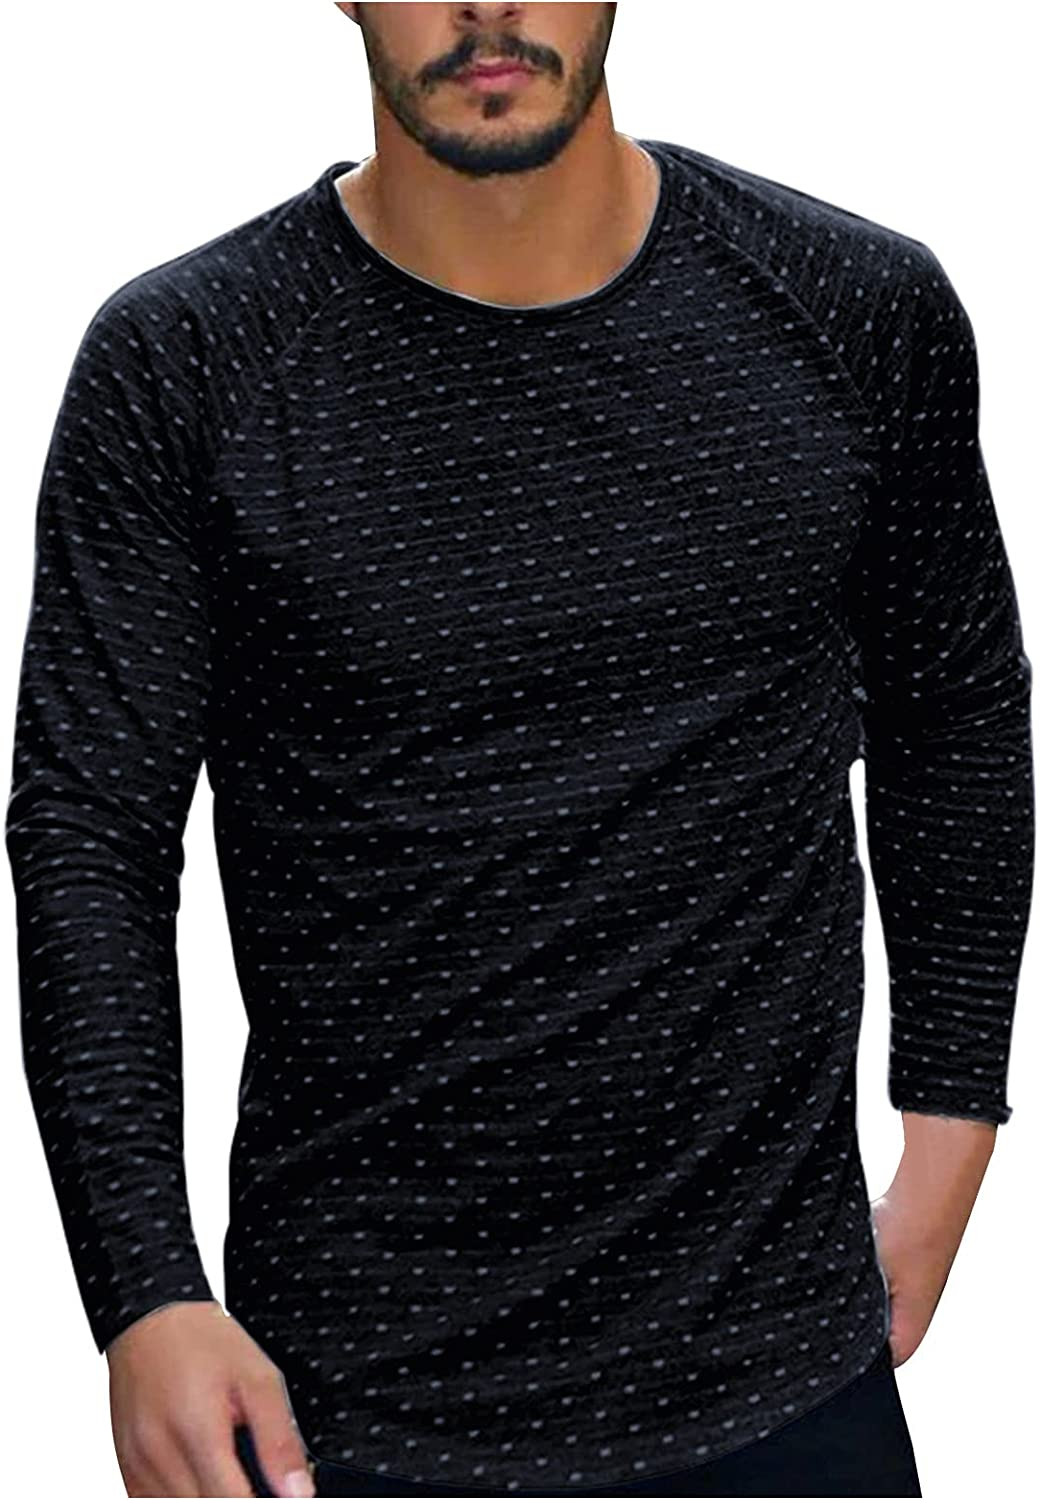 Huangse Men's Casual Round Neck Wave Point Printed T-Shirt Slim Fit Long Sleeve Tee Shirts Athletic Running Top Blouse